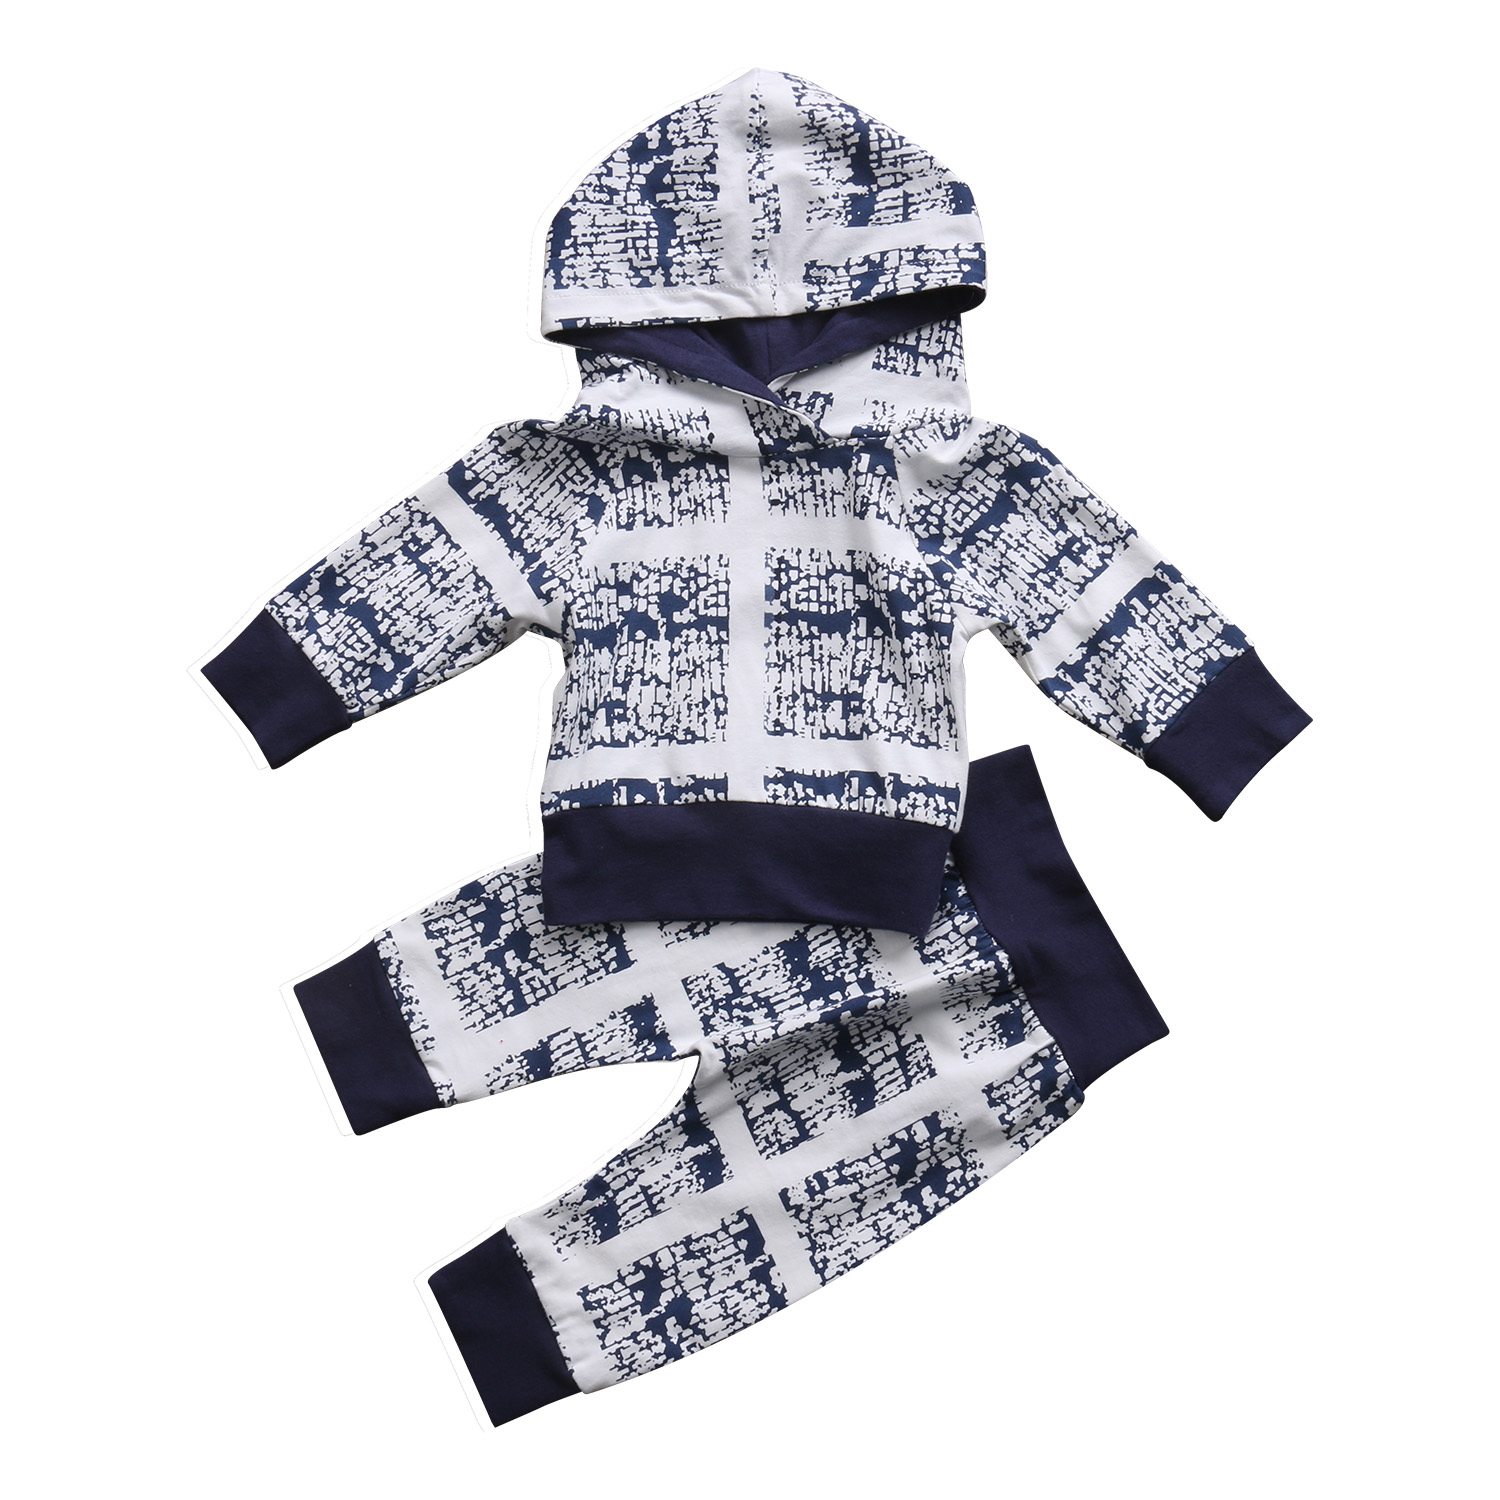 0-24M Autumn baby clothes set Newborn Baby Kids Boys Clothes Hooded Tops+Long Pants Outfits Set 2pcs kid baby boy clothing newborn baby kids boys tops cool letter printing i do what i want sleeveless t shirt vest short pants 2pcs outfits set clothes